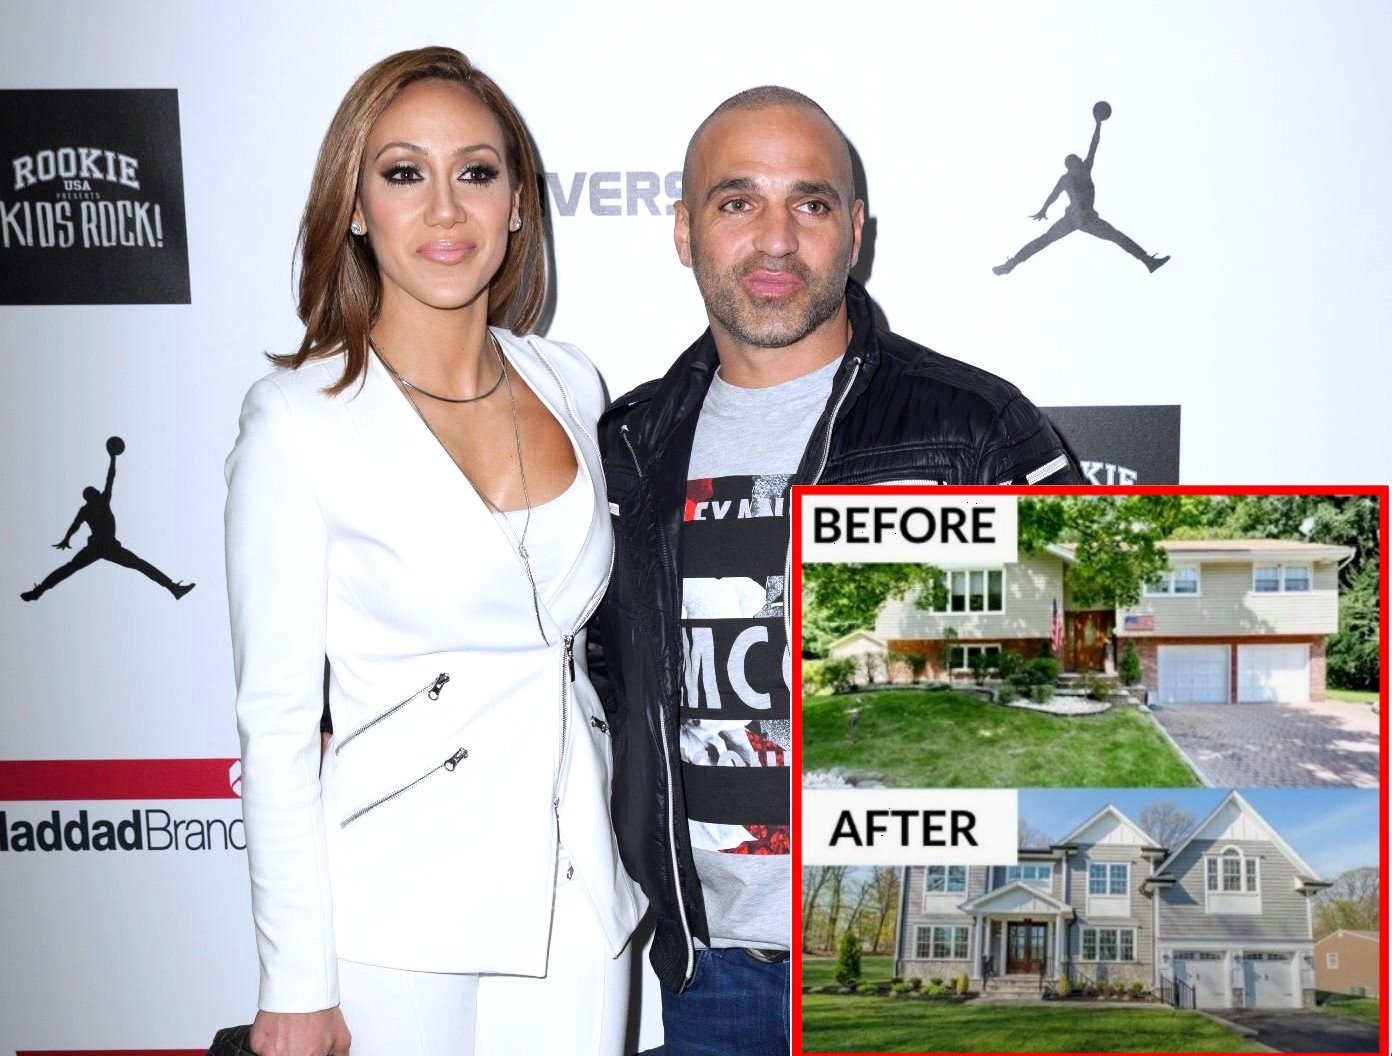 Woman Accuses Joe Gorga of Using Fake 'Before' and 'After' Photos to Promote His House-Flipping Business, Says RHONJ Star Used Photo of Her Home Without Ever Working on It